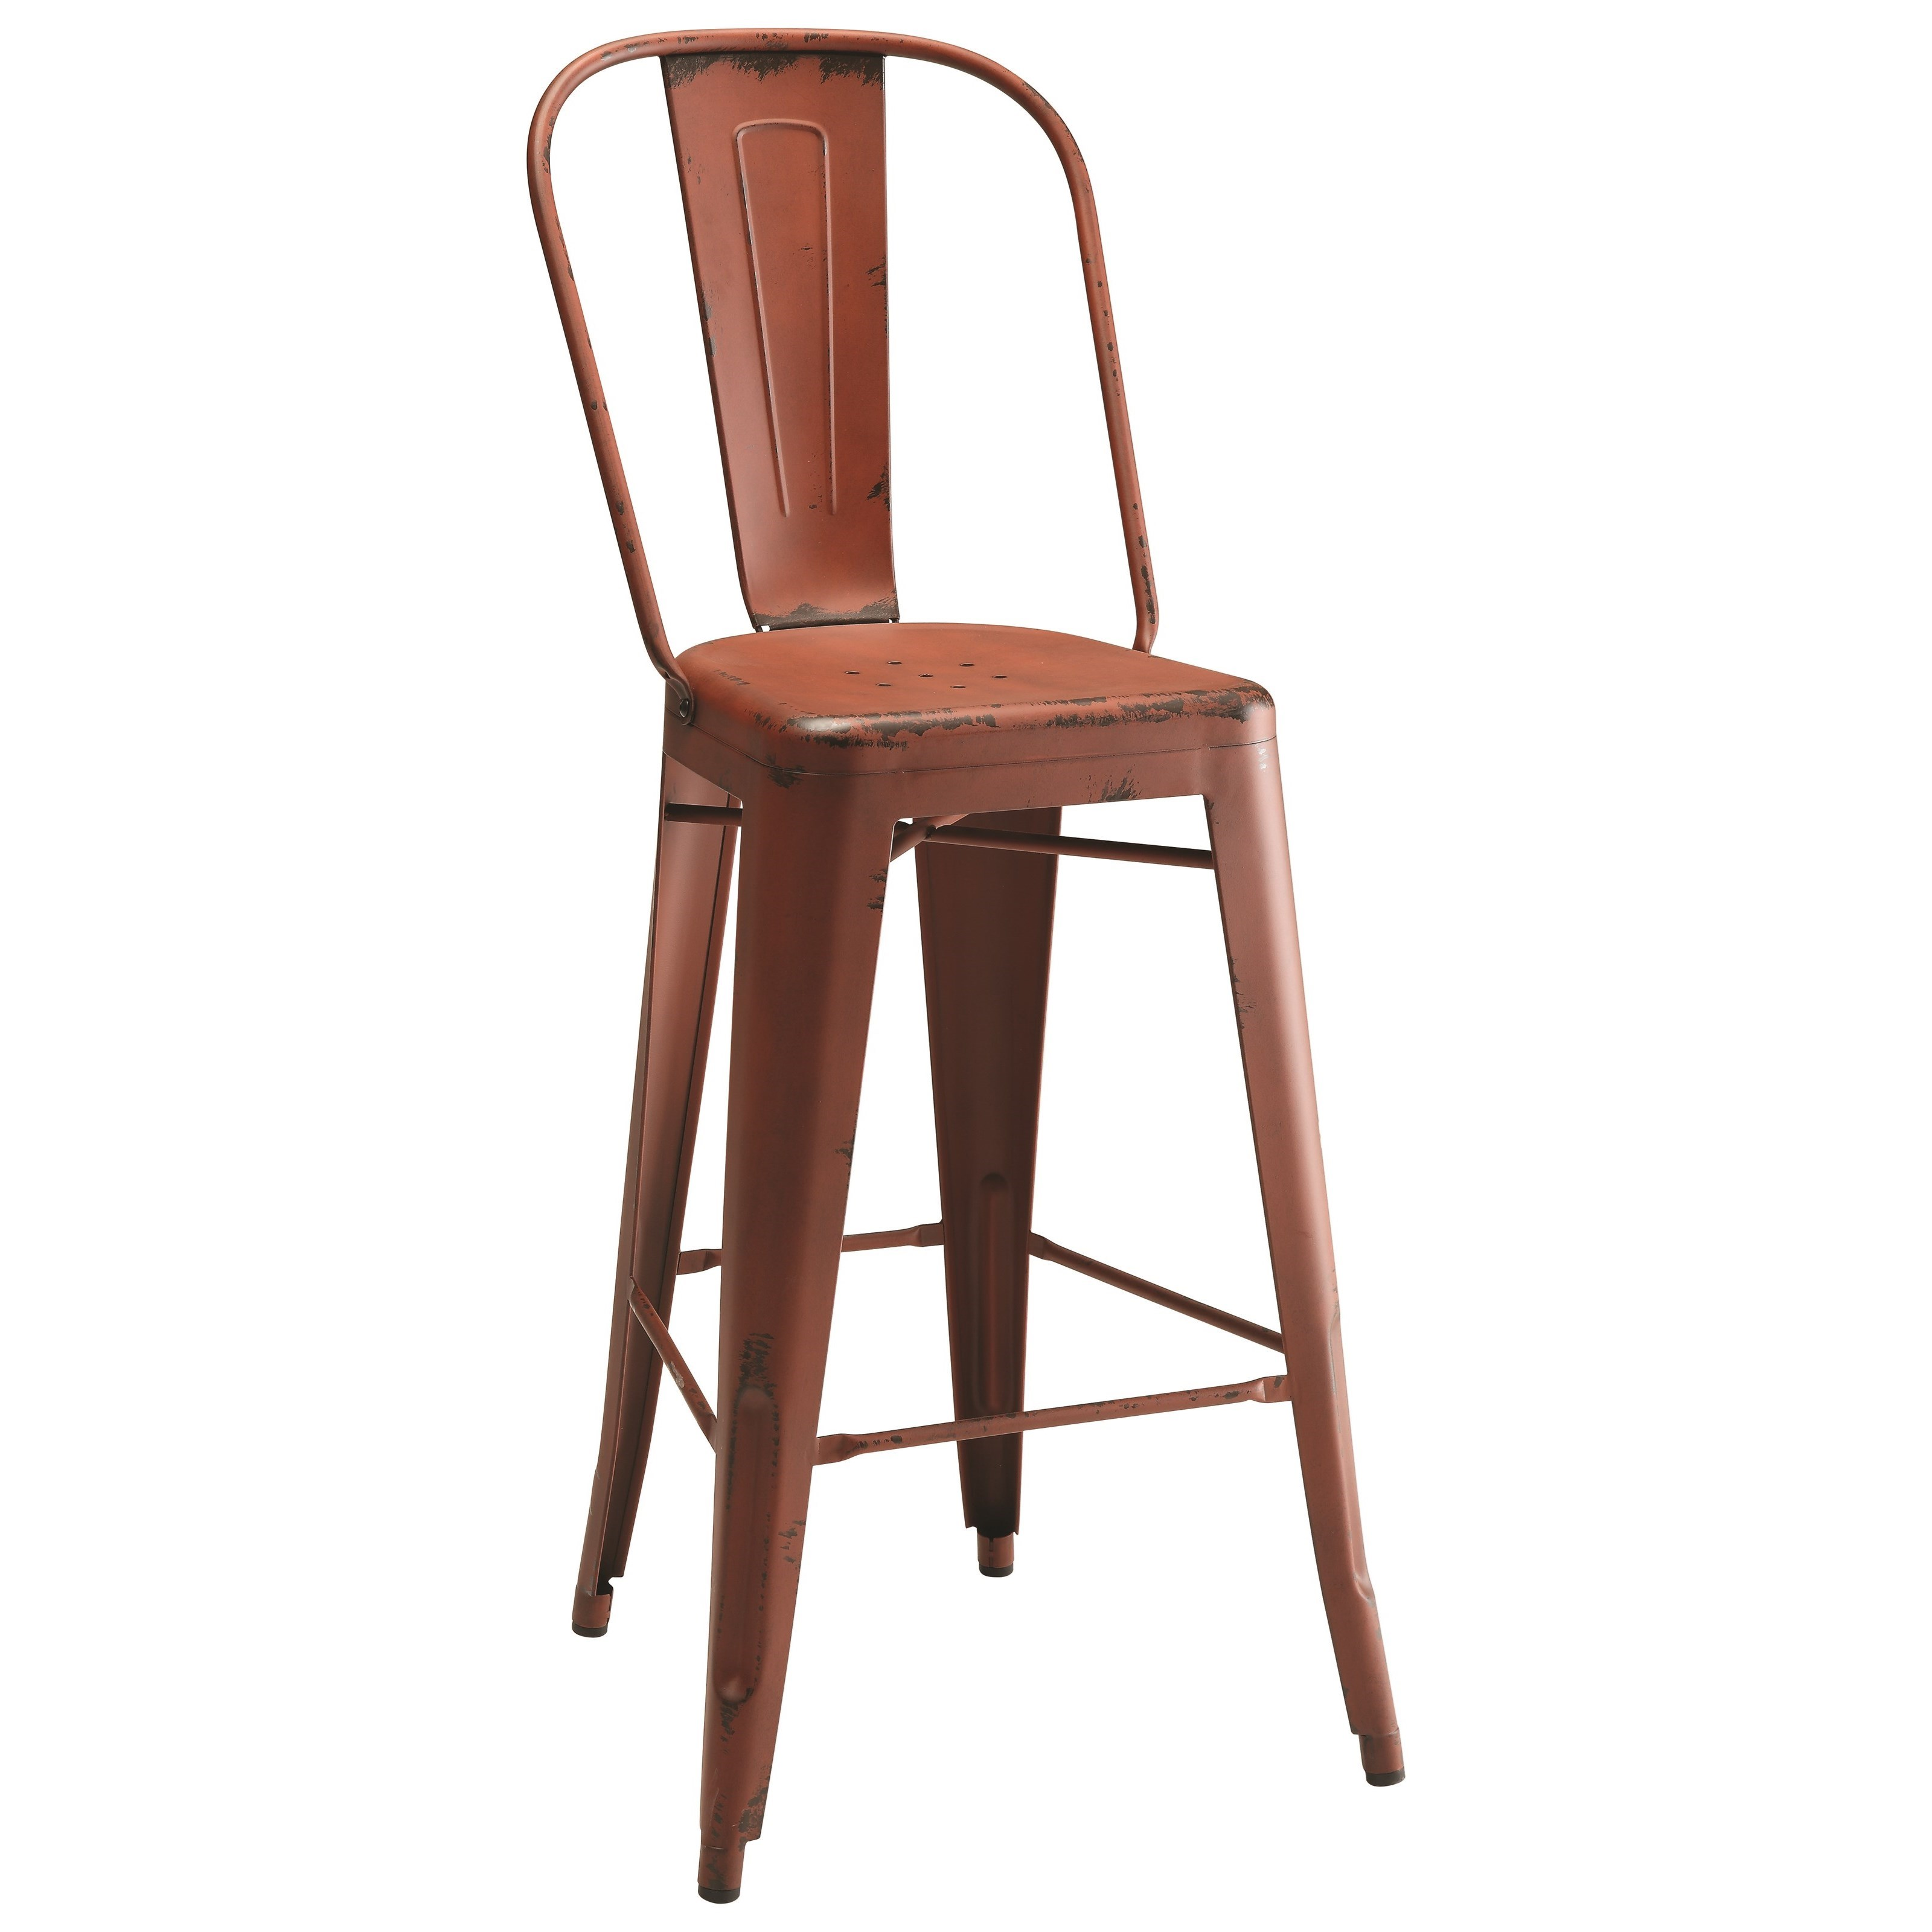 Coaster Dining Chairs and Bar Stools Bar Stool - Item Number: 106013